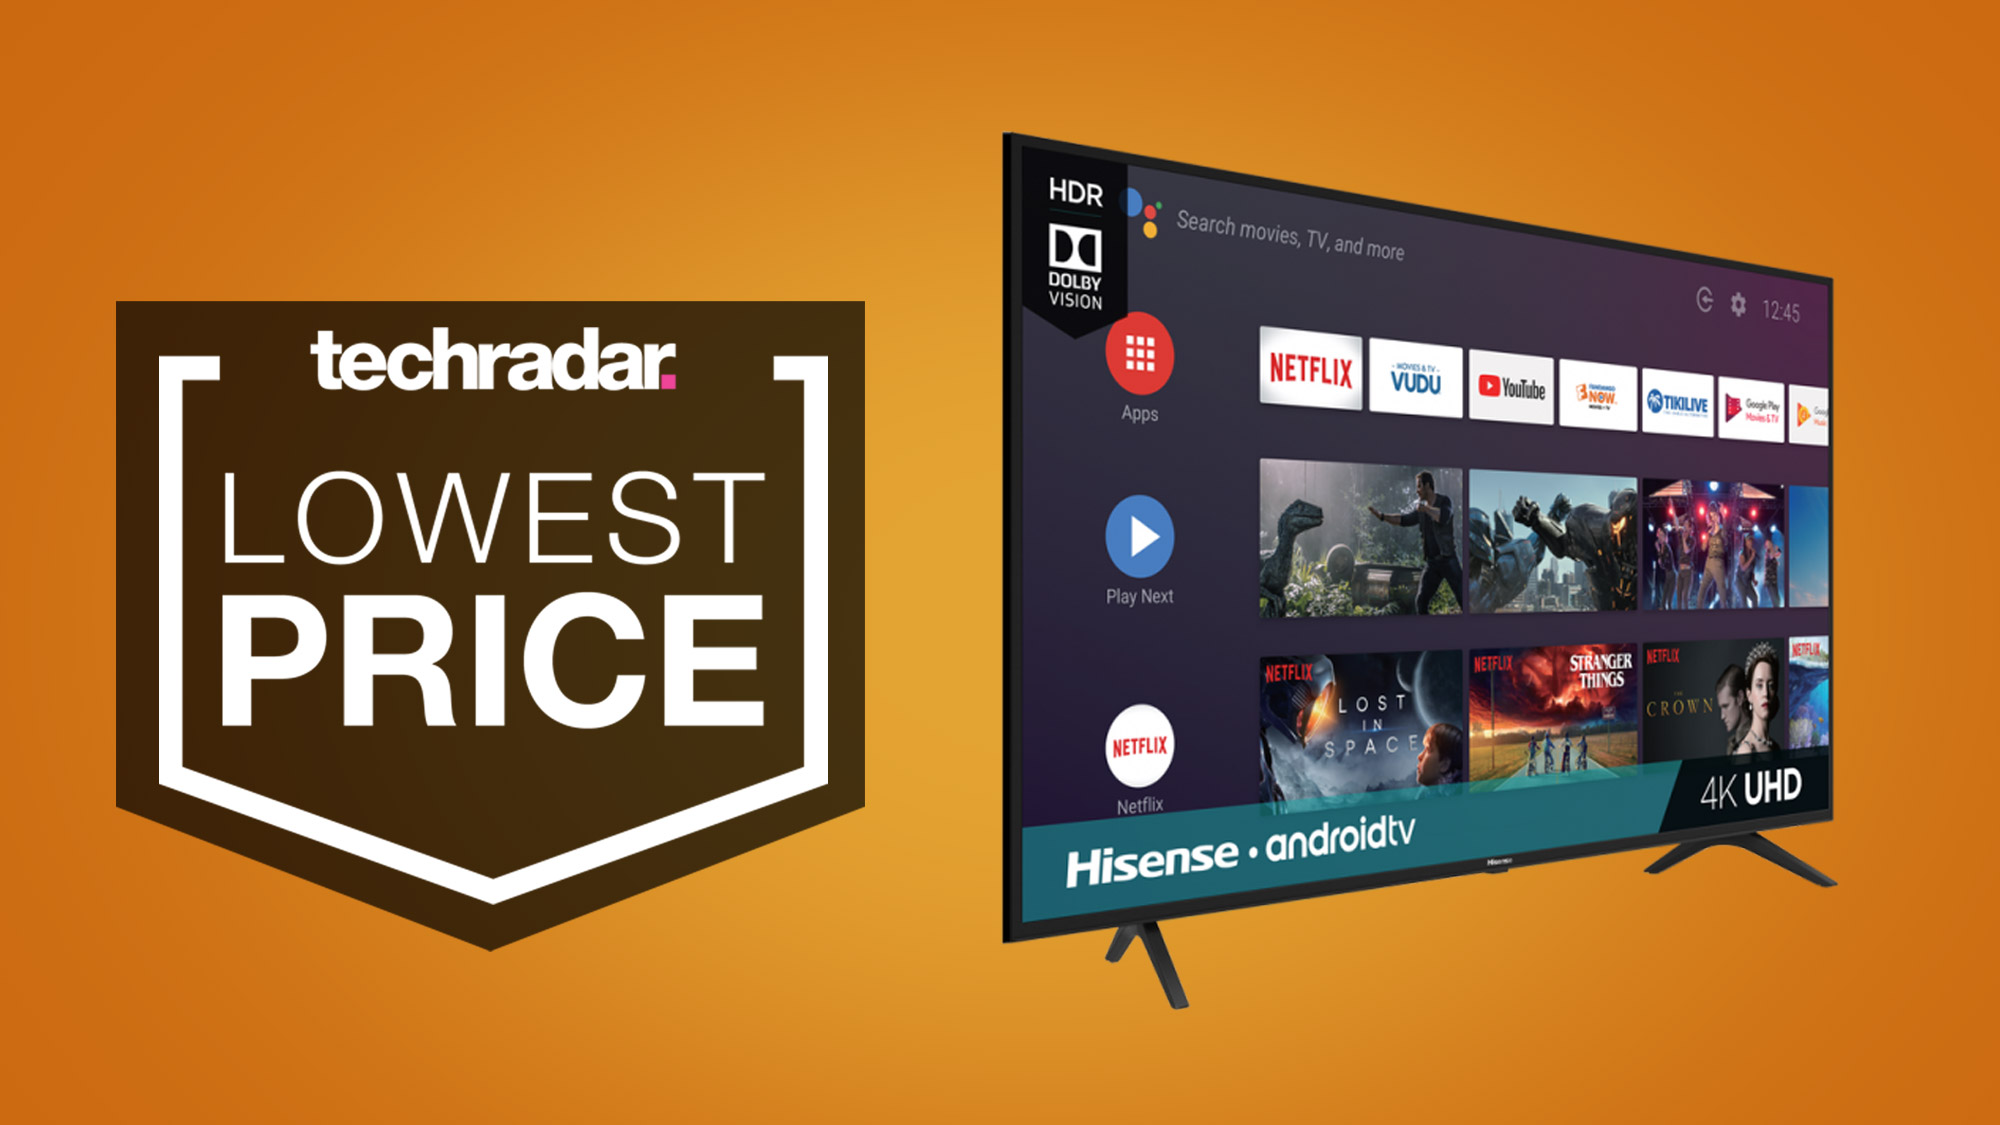 black friday tv deals are ending soon